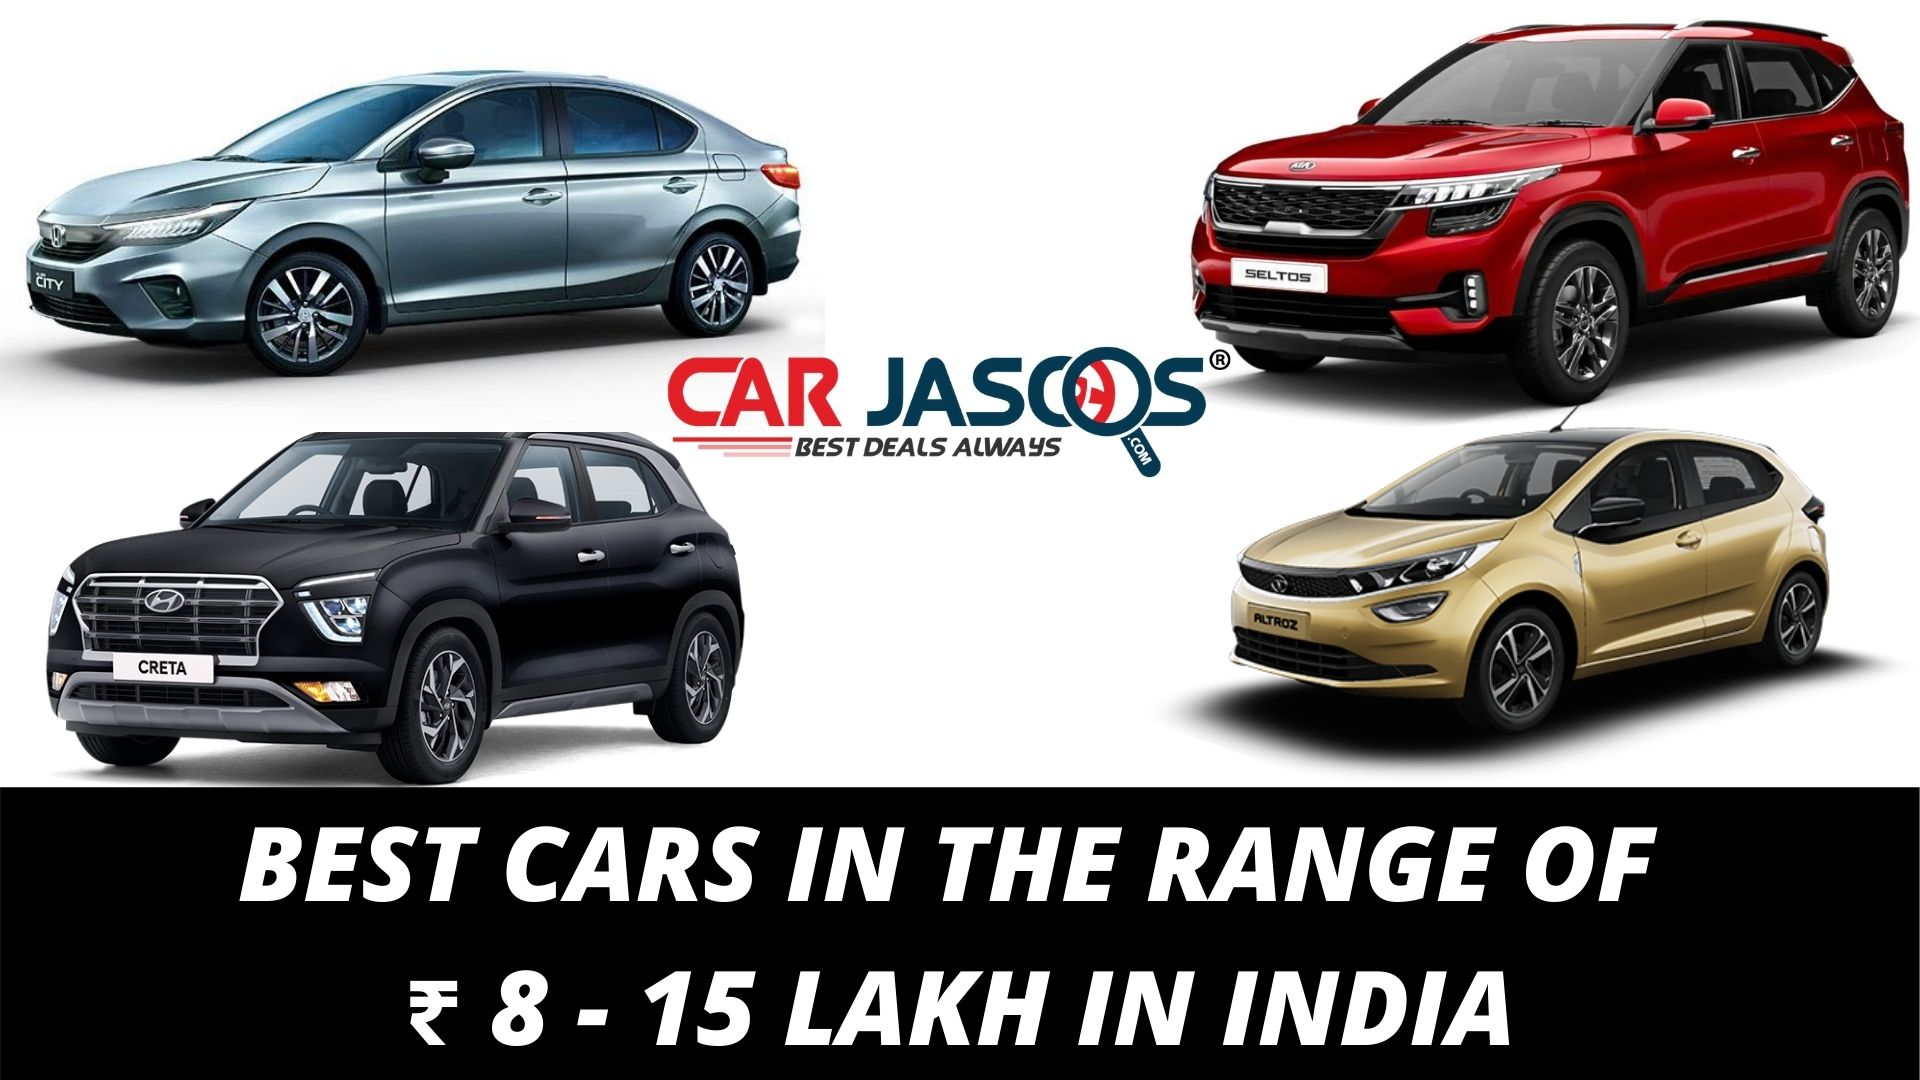 BEST CARS IN THE RANGE OF ₹ 8 - 15 LAKH IN INDIA